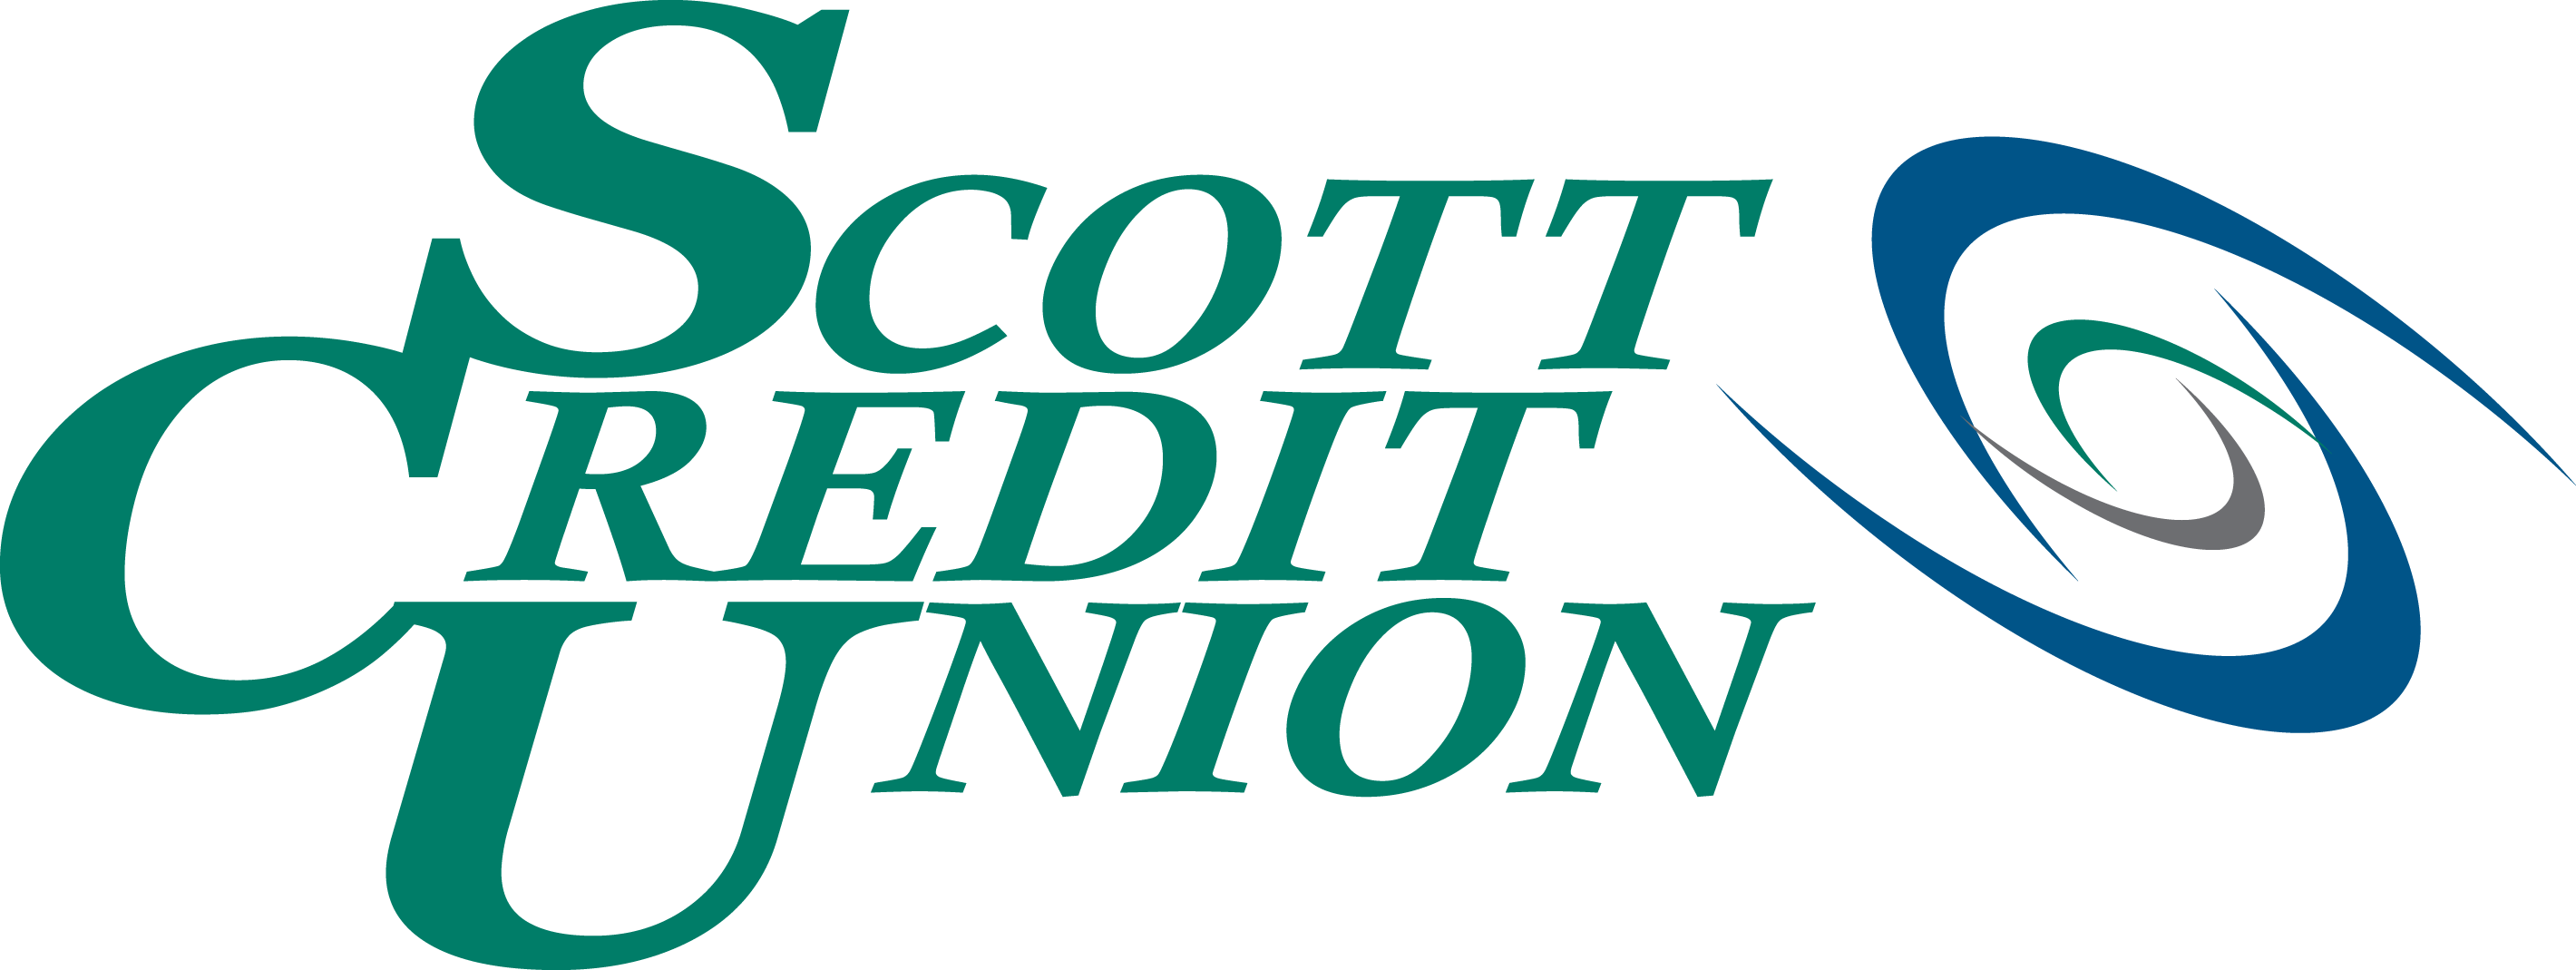 Scott Credit Union_Transparent